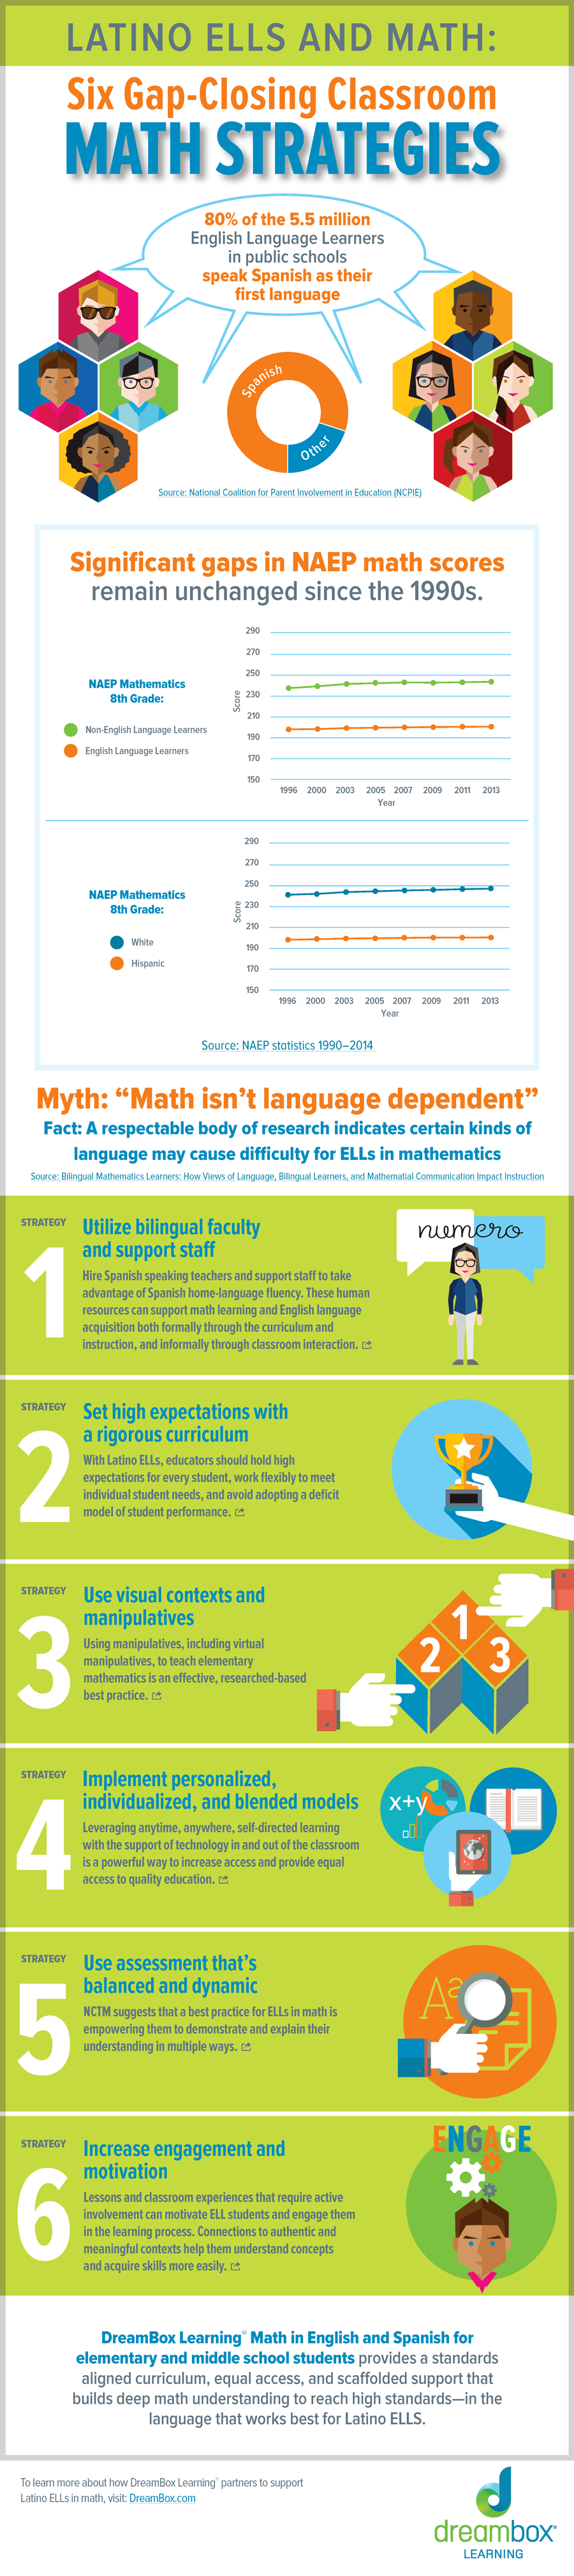 Six Gap-Closing Classroom Math Strategies Infographic - e